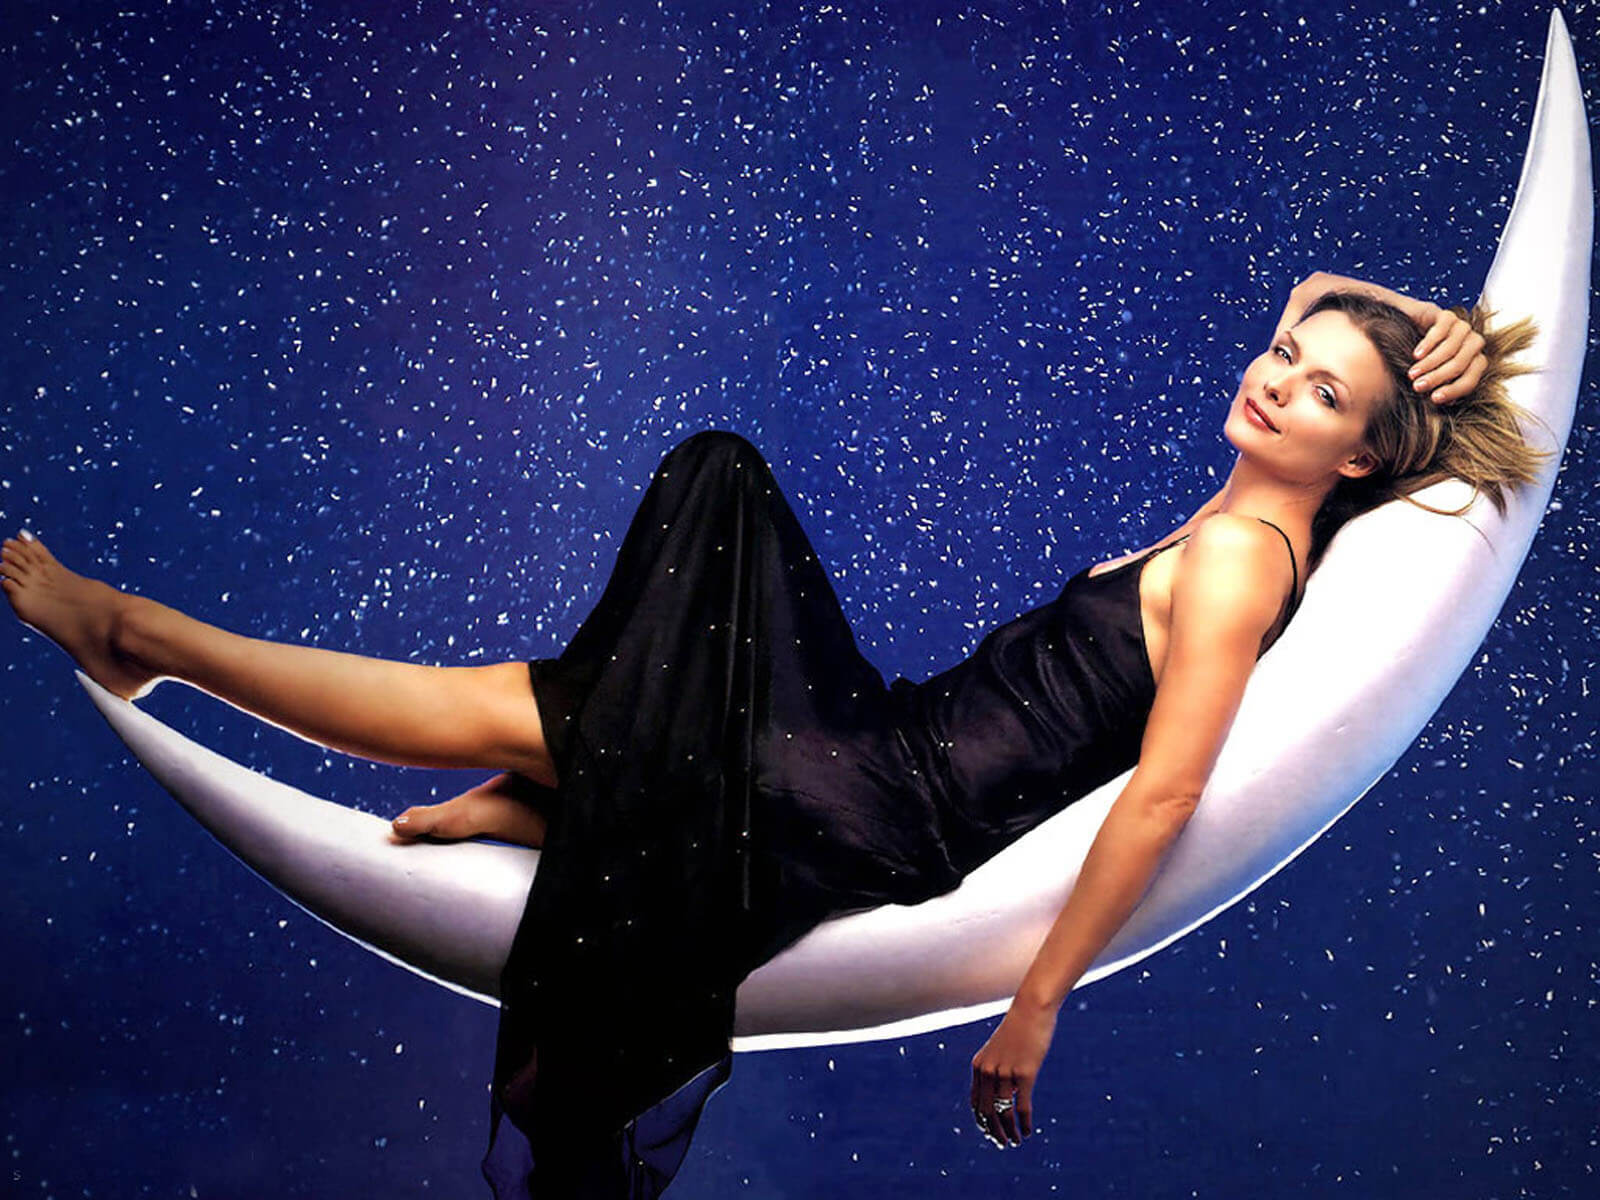 Michelle Pfeiffer feet awesome pic